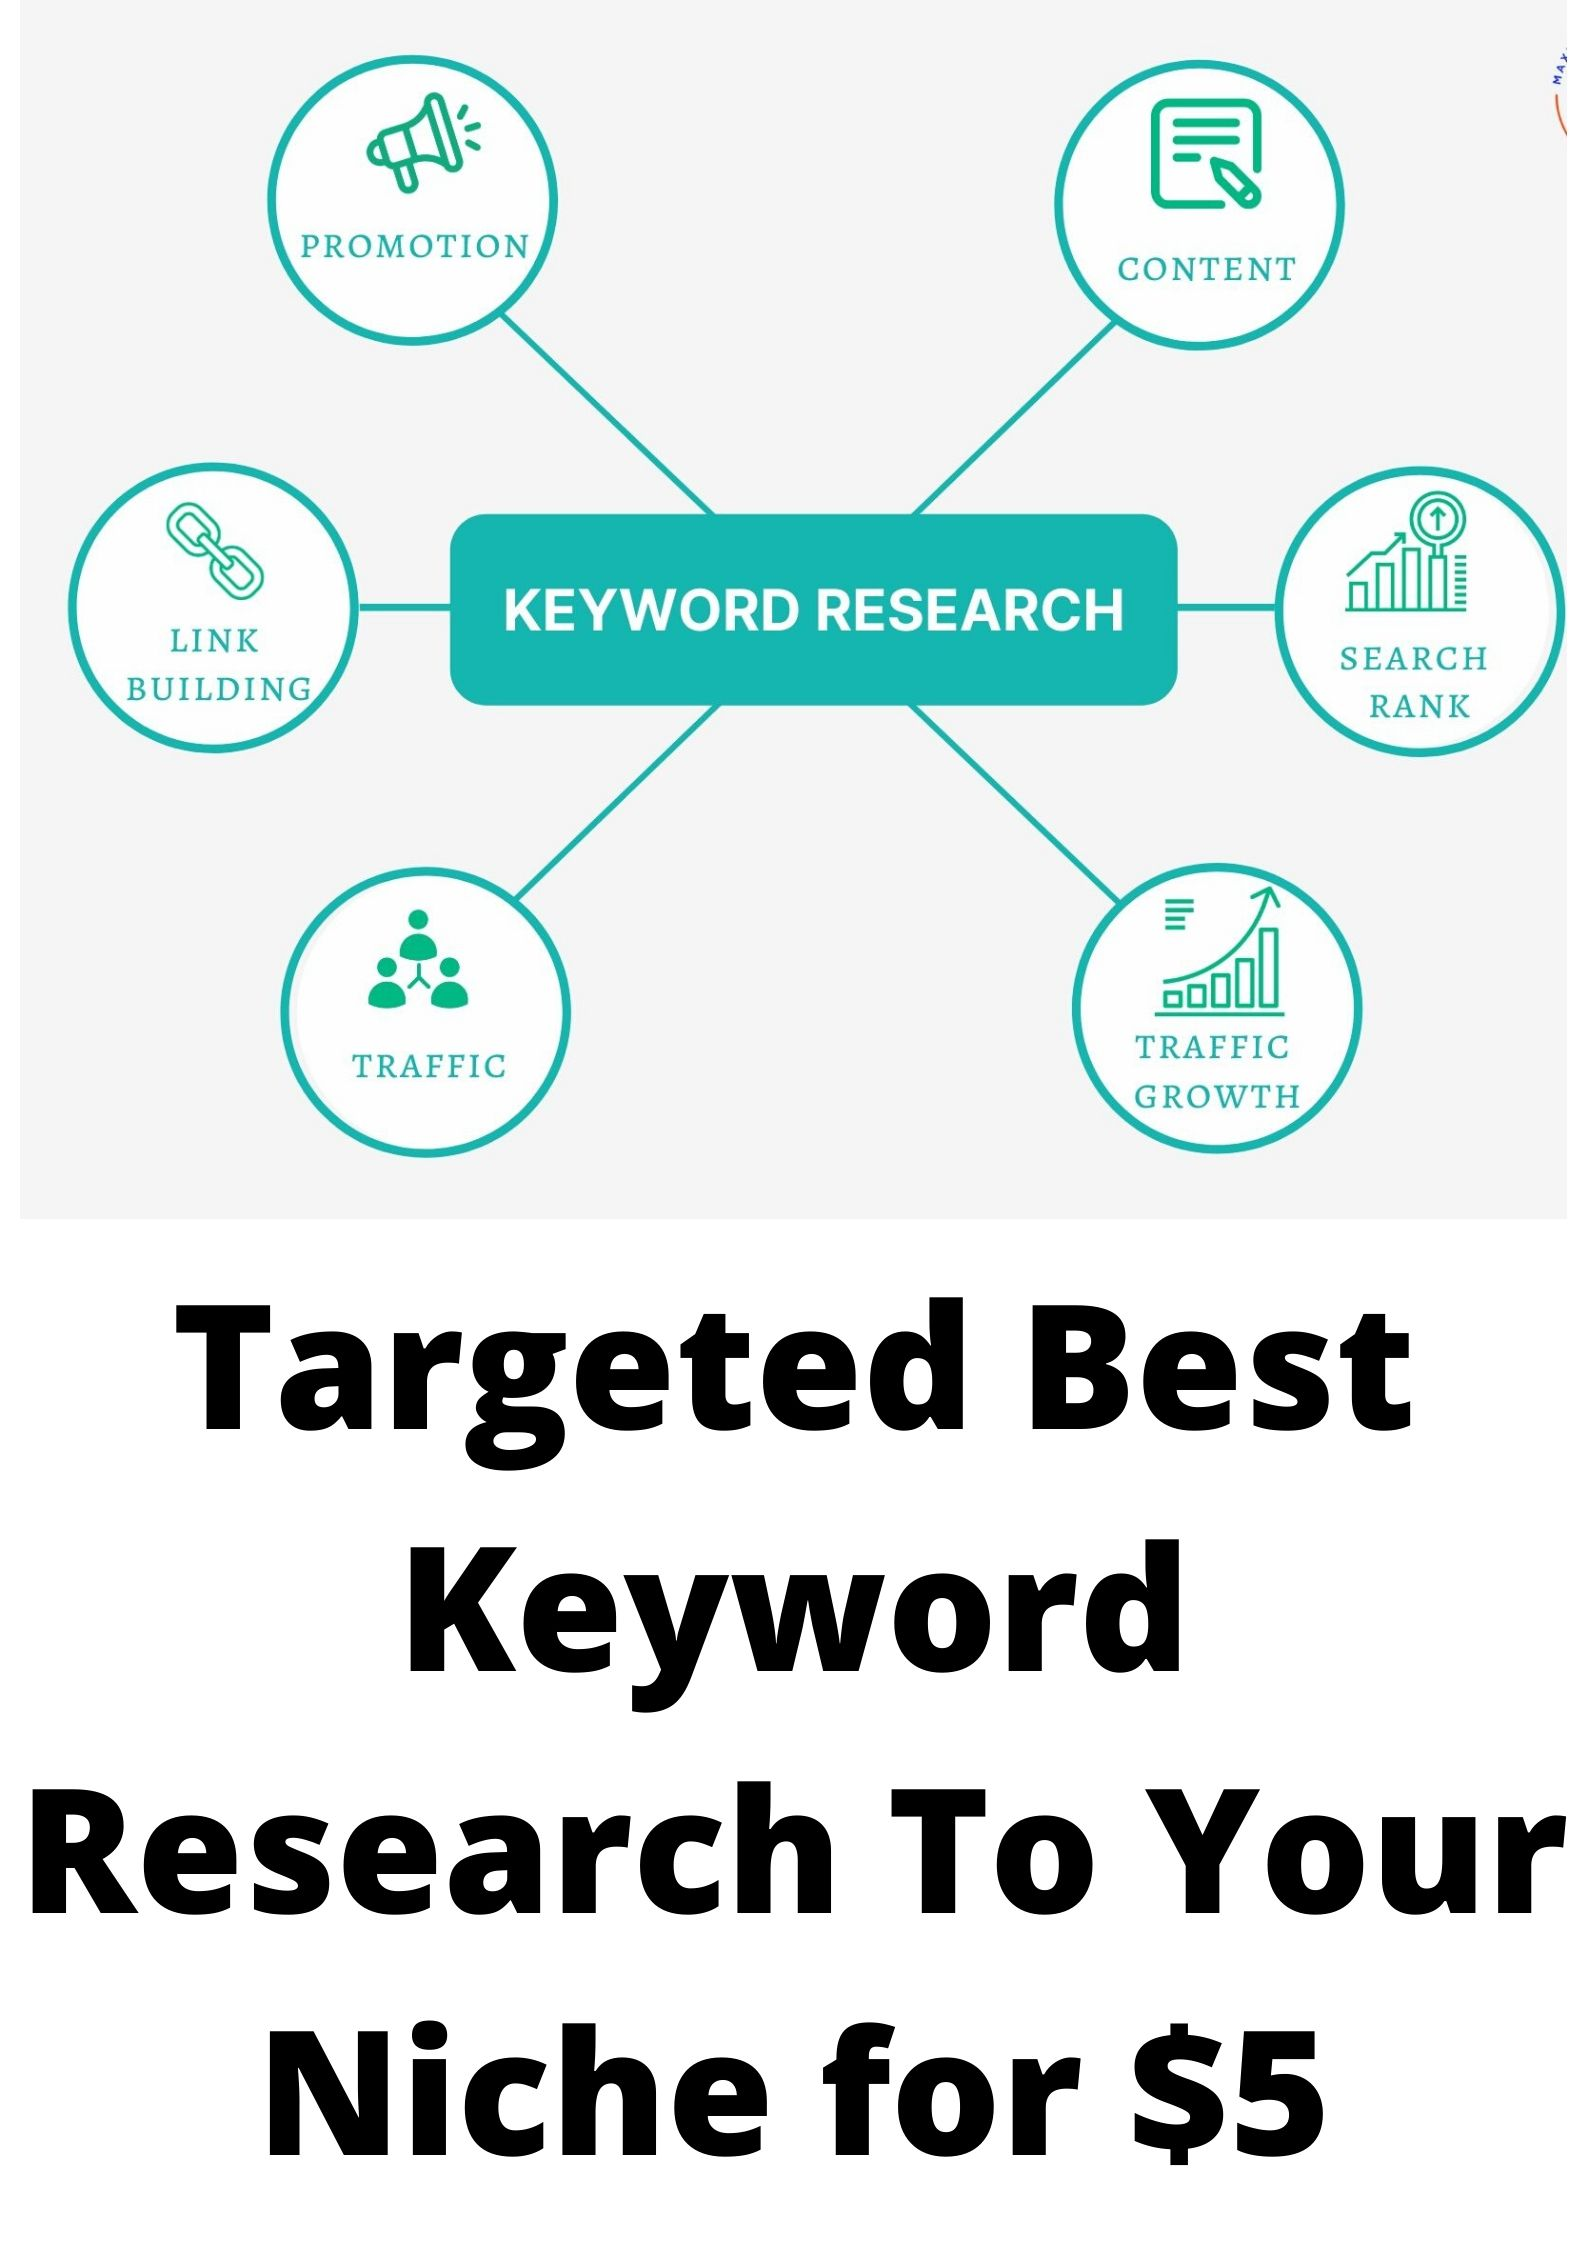 Niche Targeted Best Keyword Research for Your Traffic